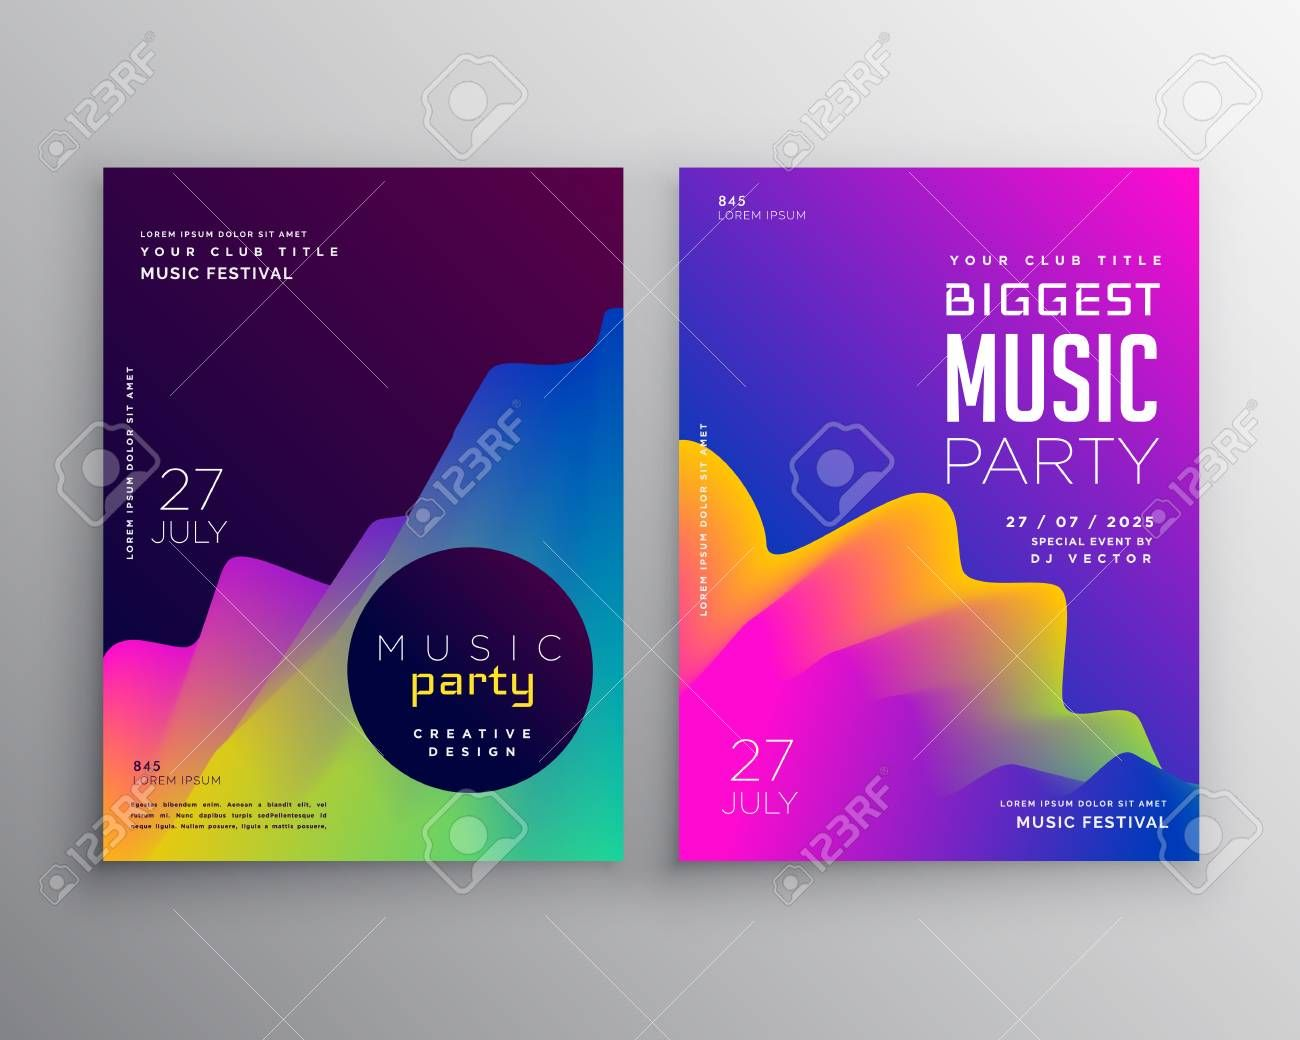 Vibrant Abstract Music Party Event Flyer Poster Template Design Sponsored Music Party Poster Template Design Event Schedule Design Poster Template Free